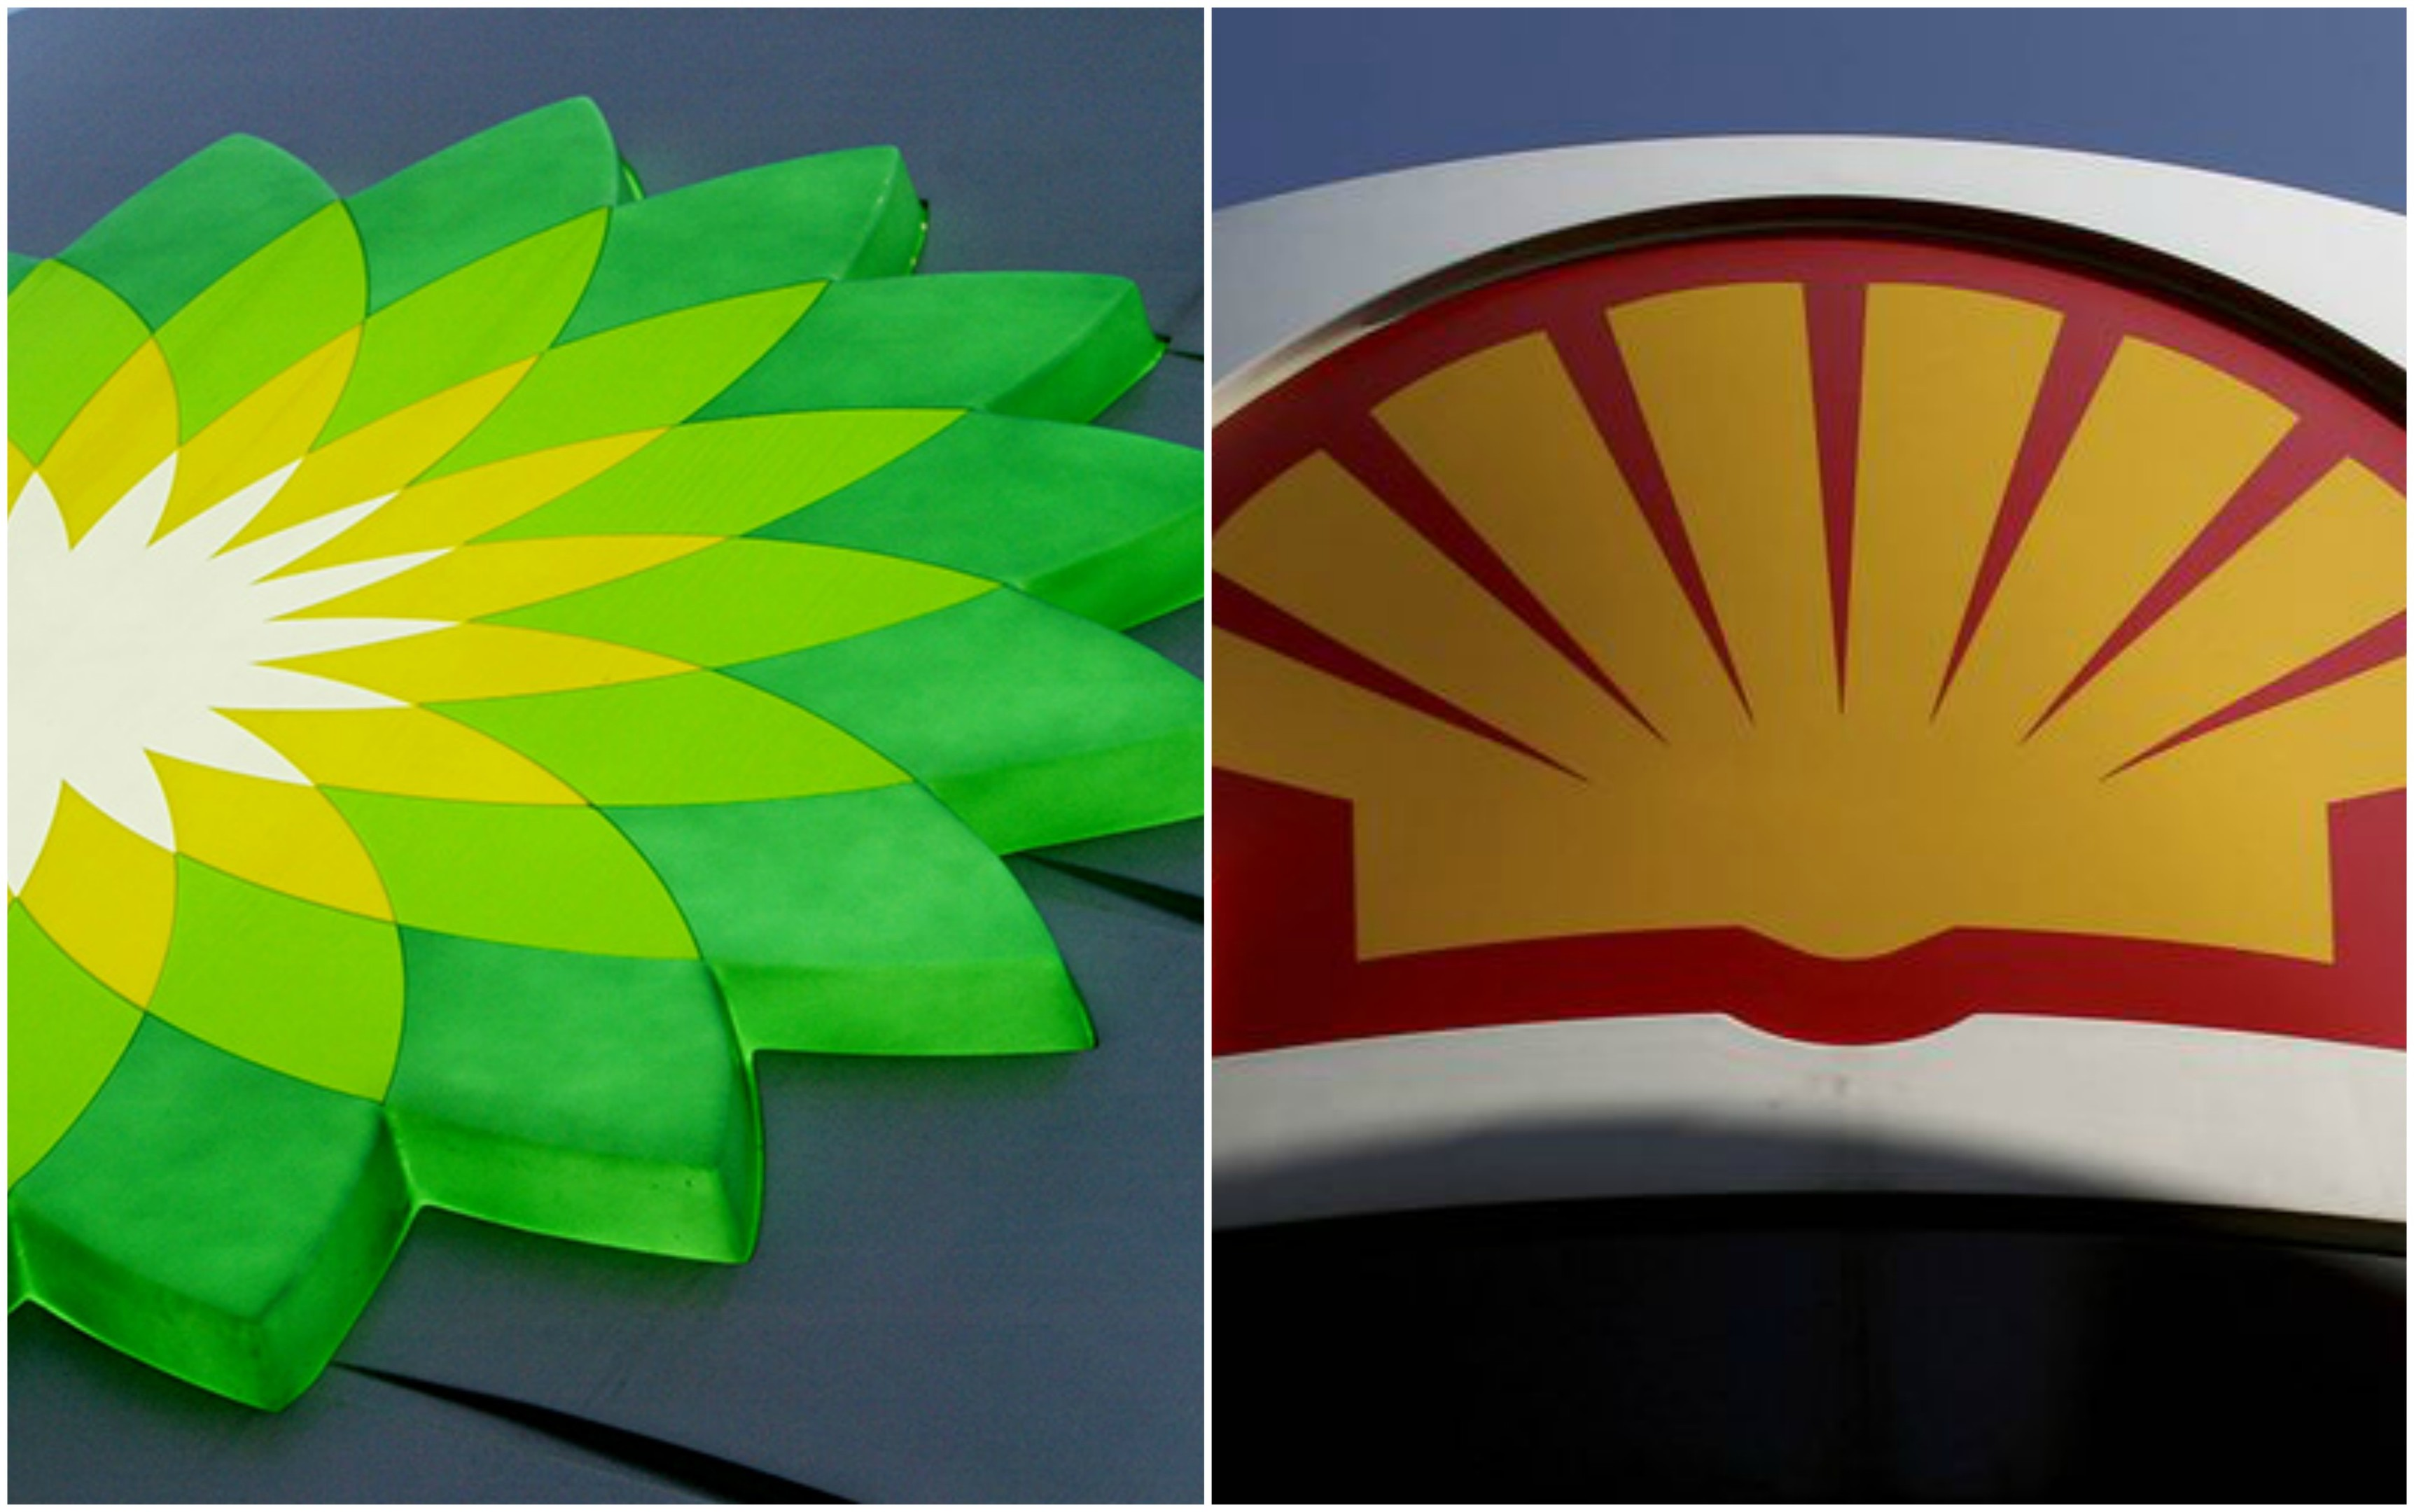 Shell and BP reported hefty Q3 profits